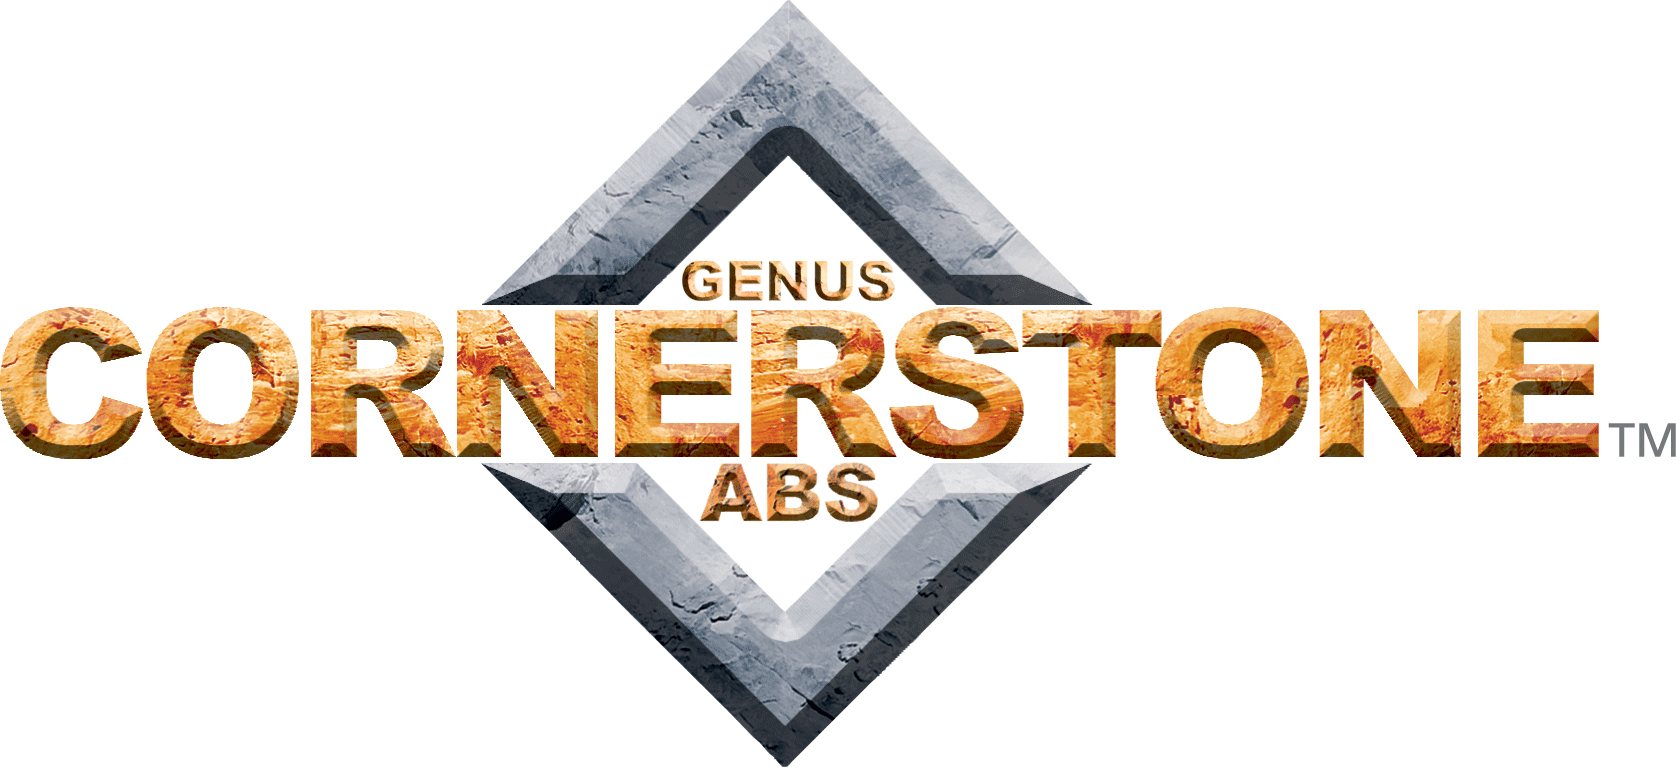 ABS-Cornerstone_Genus